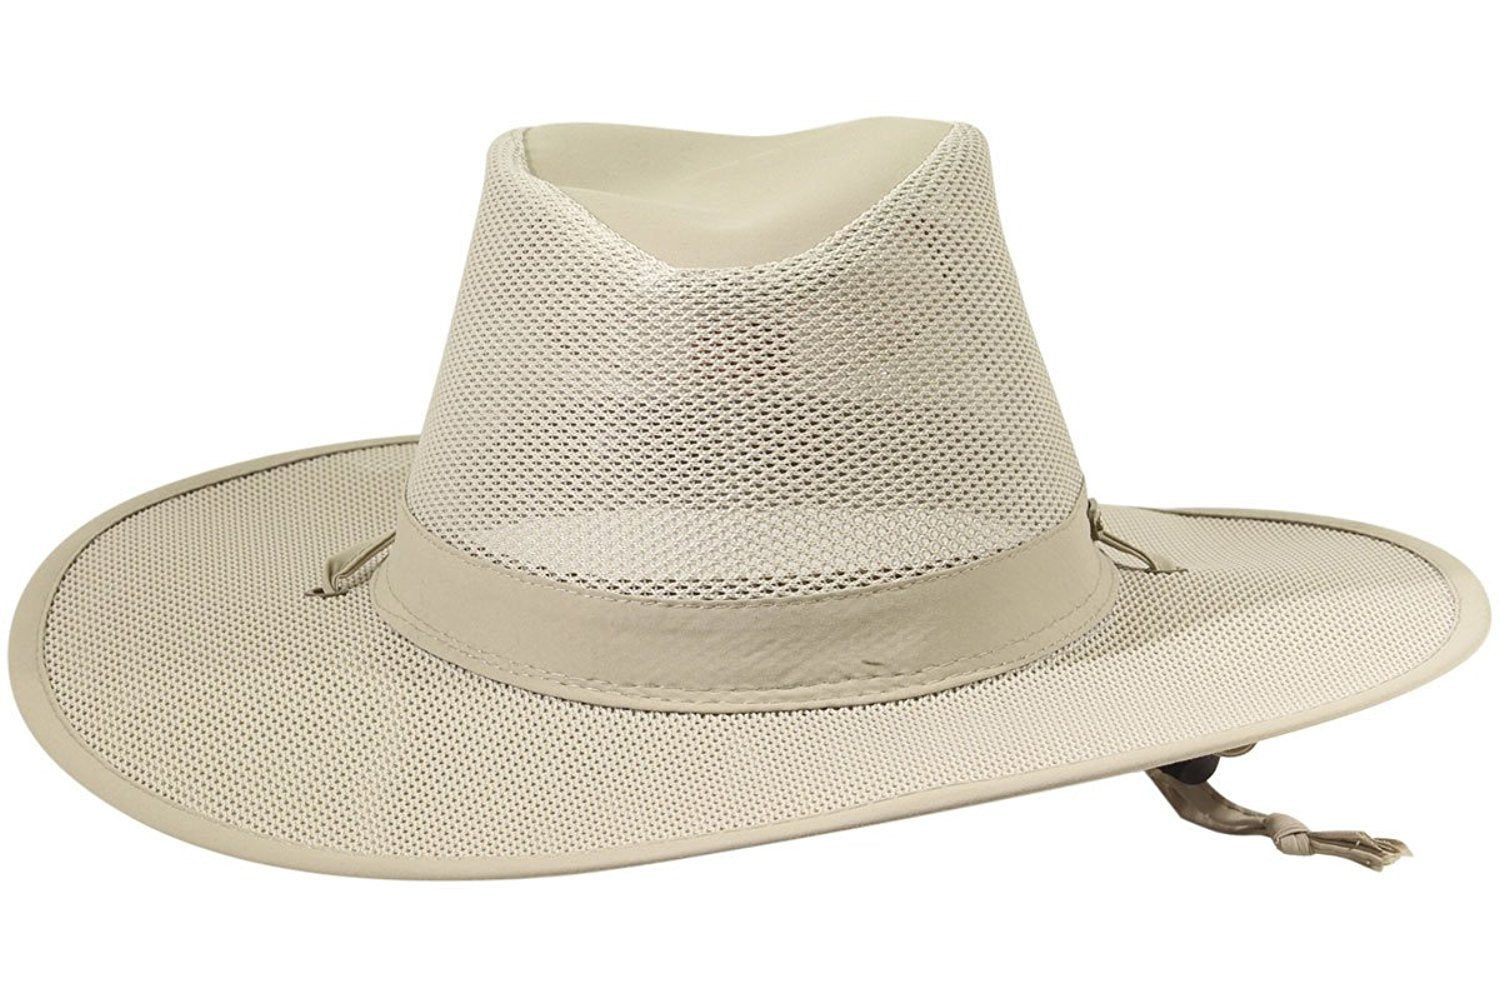 Stetson No Fly Zone Insect Shield Nylon Mesh Safari with Chin Cord Hat ... 950ae9351145